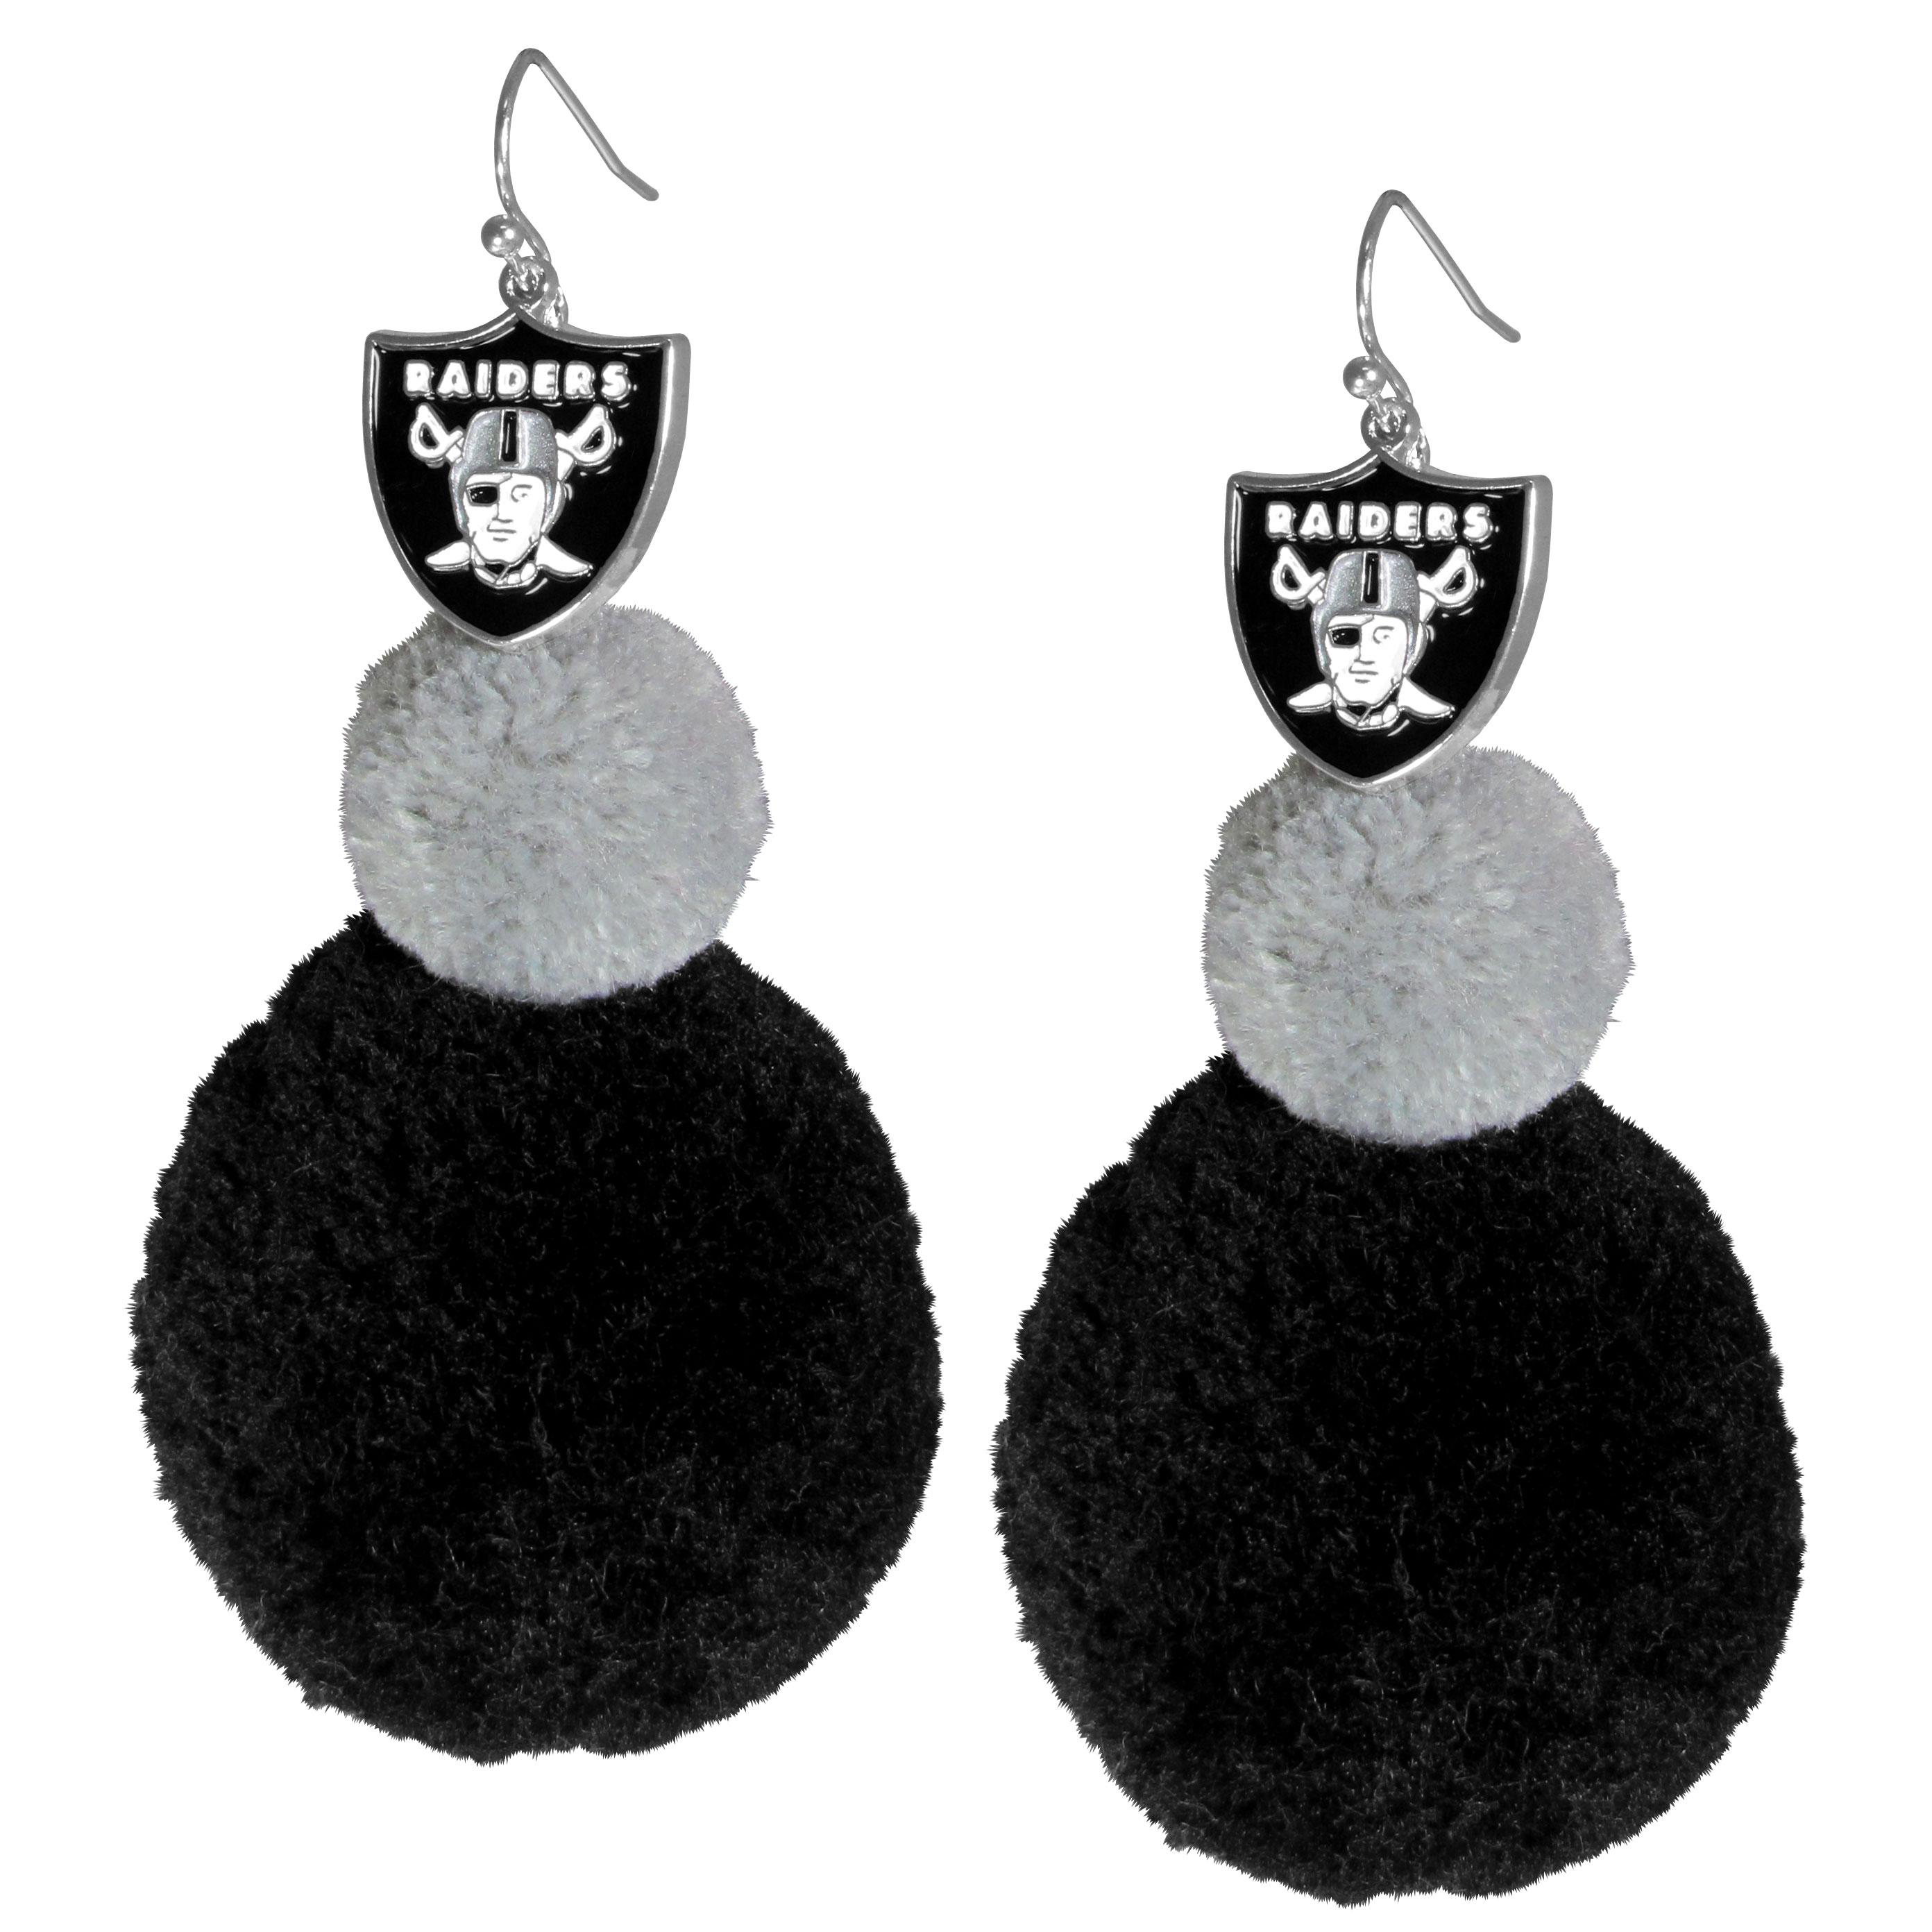 Oakland Raiders Pom Pom Earrings - These fun and bold earrings are a game day must! The earrings feature a metal Oakland Raiders charm with enameled color details that hangs above to colorful pom pom charms. The largest pom is 1.5 inches round for, the earrings hang at 3.5 inches long. The fishhook posts are nickel free and hypoallergenic.